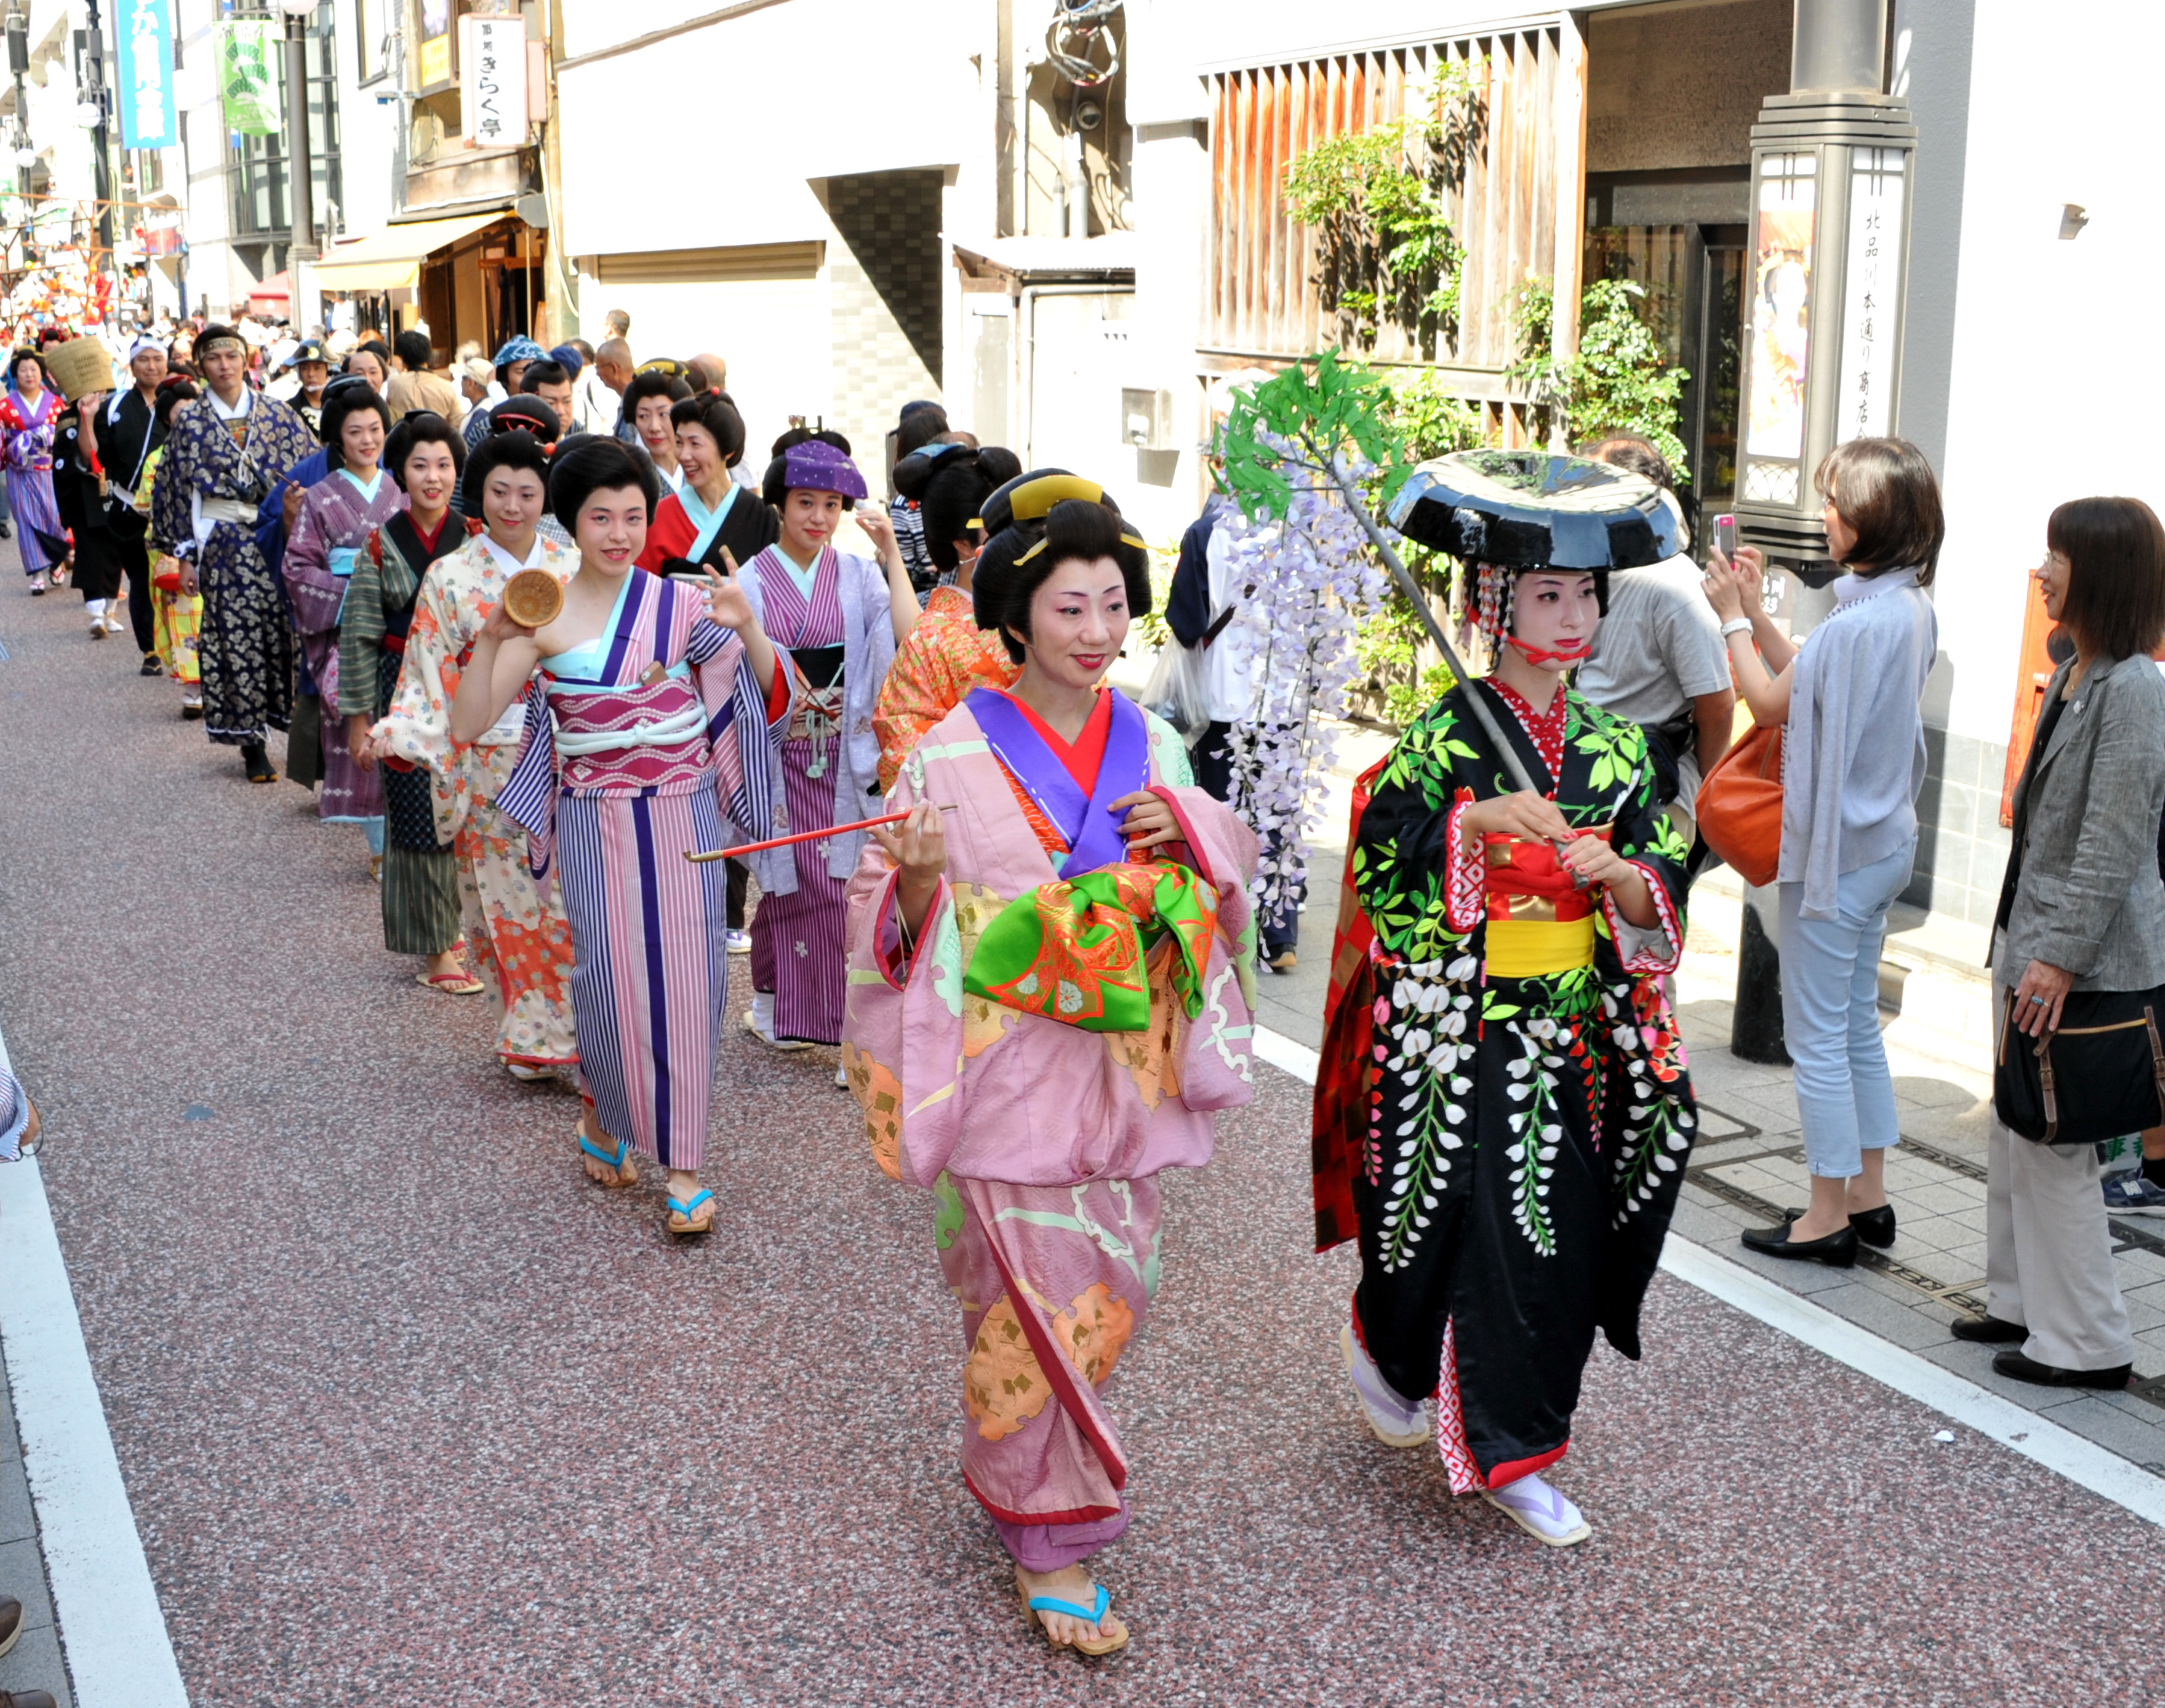 wedding customs of the japanese edo period Gender expectations of edo period japan  without war, edo period samurai culture shifted from bravery and decisive action on the battlefield to finding ways to .